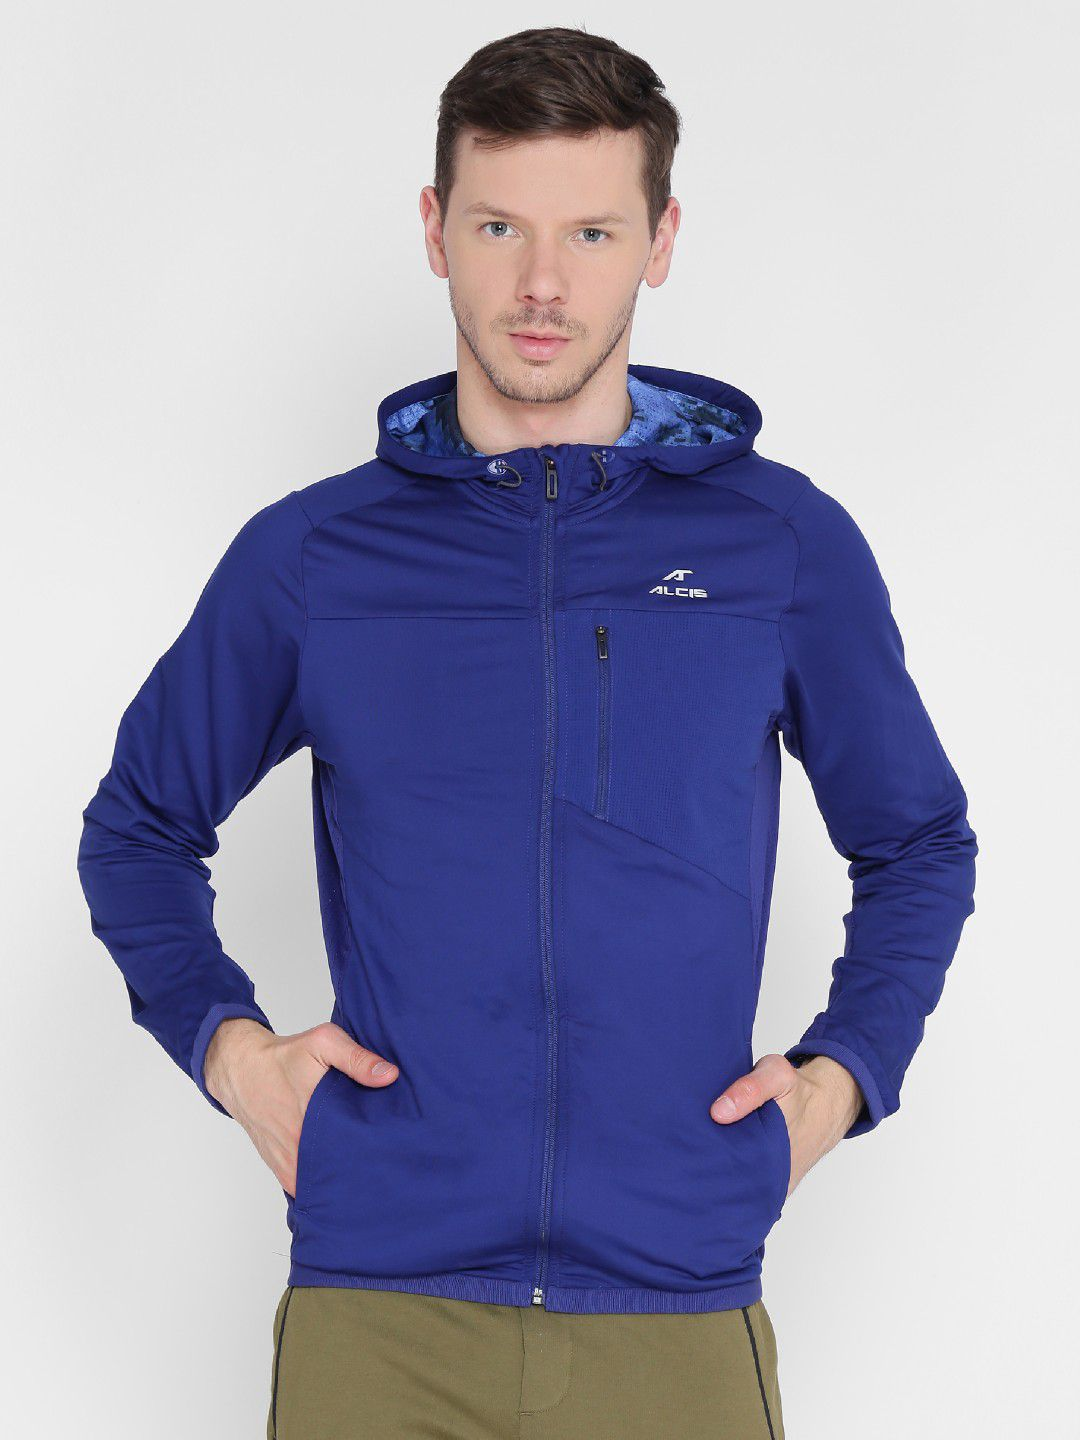 Alcis Mens Solid Blue Track Jacket